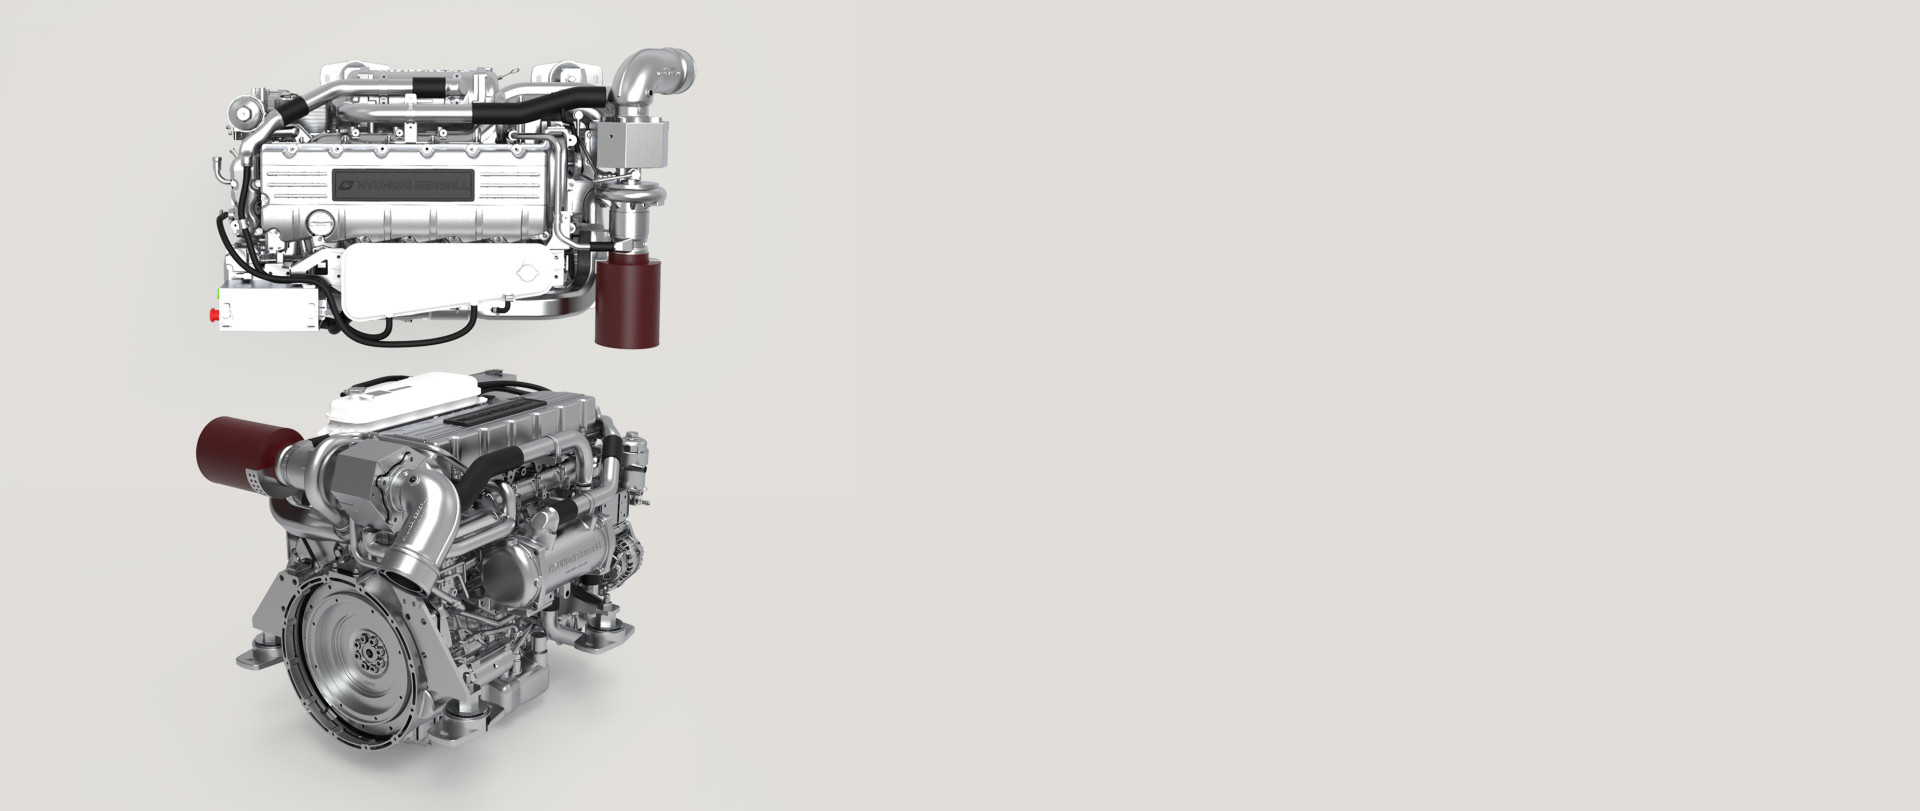 Hyundai Seasall G-Series diesel engine